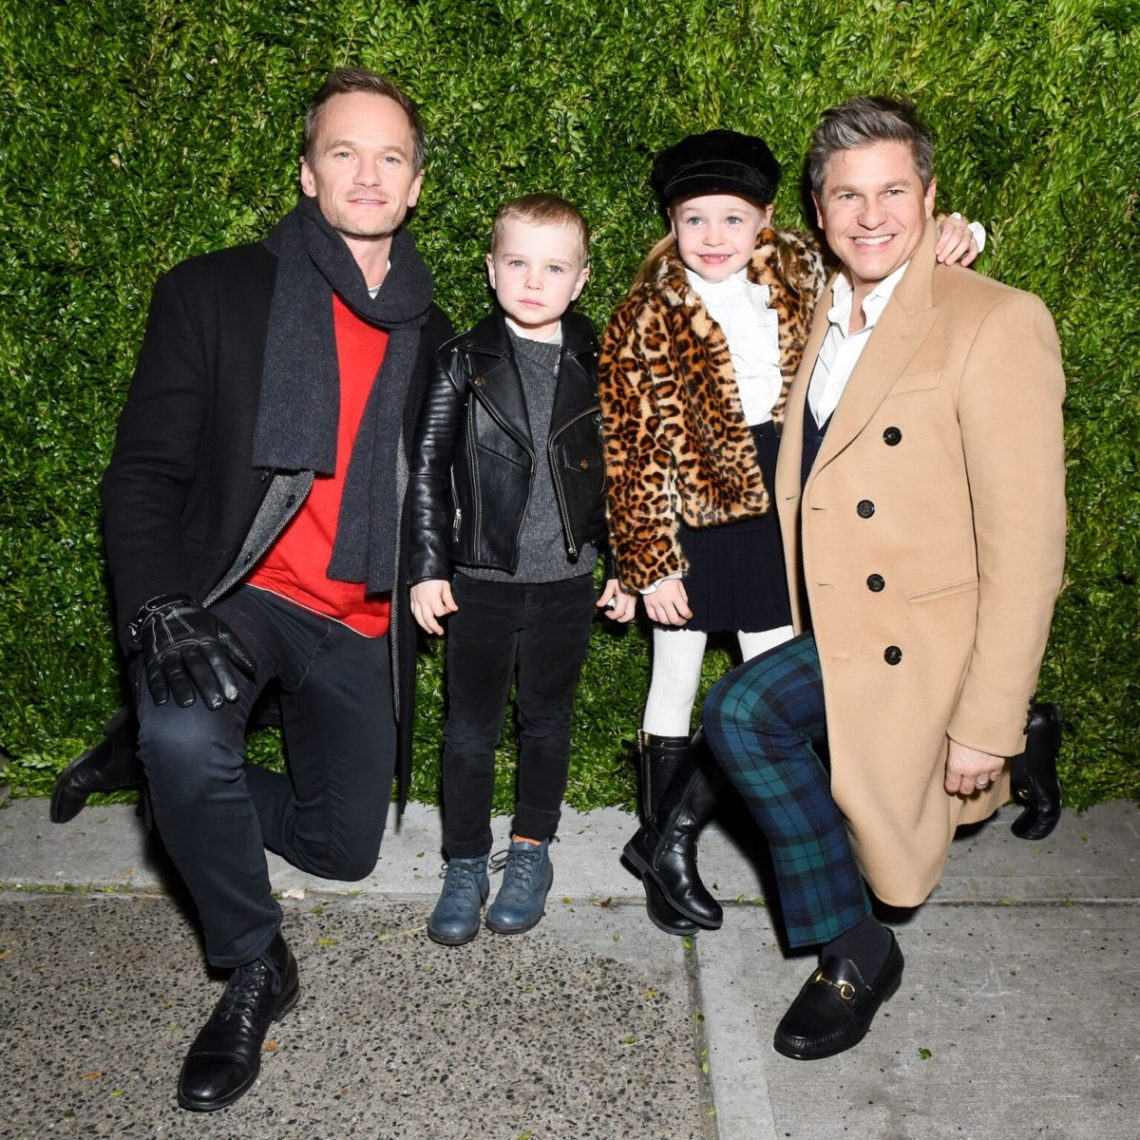 Neil Patrick Harris and David Burtka with their children